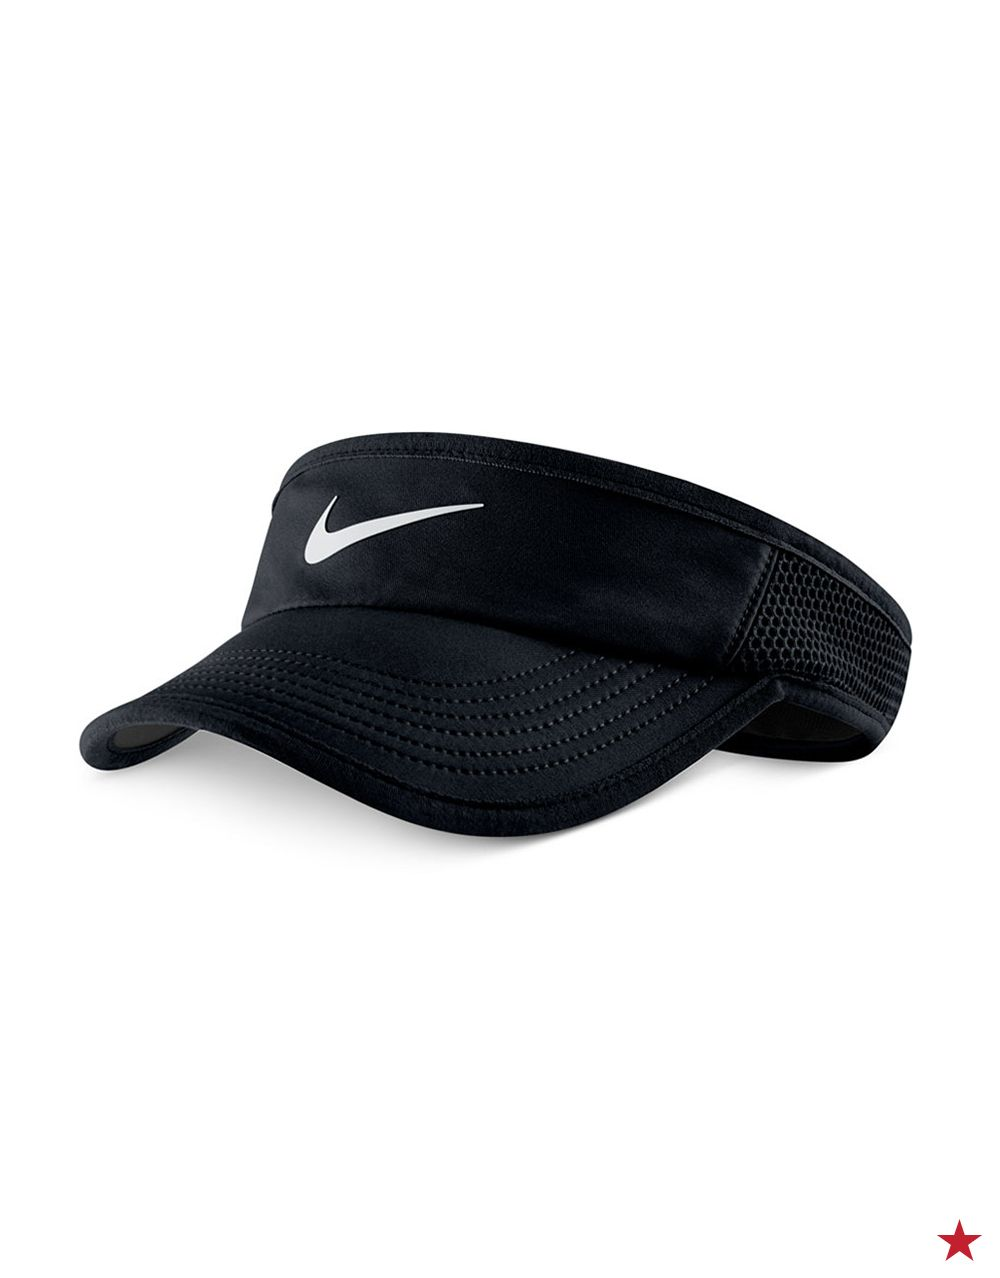 Cap. Nike Vest. Ponytail up 8886454e3bd